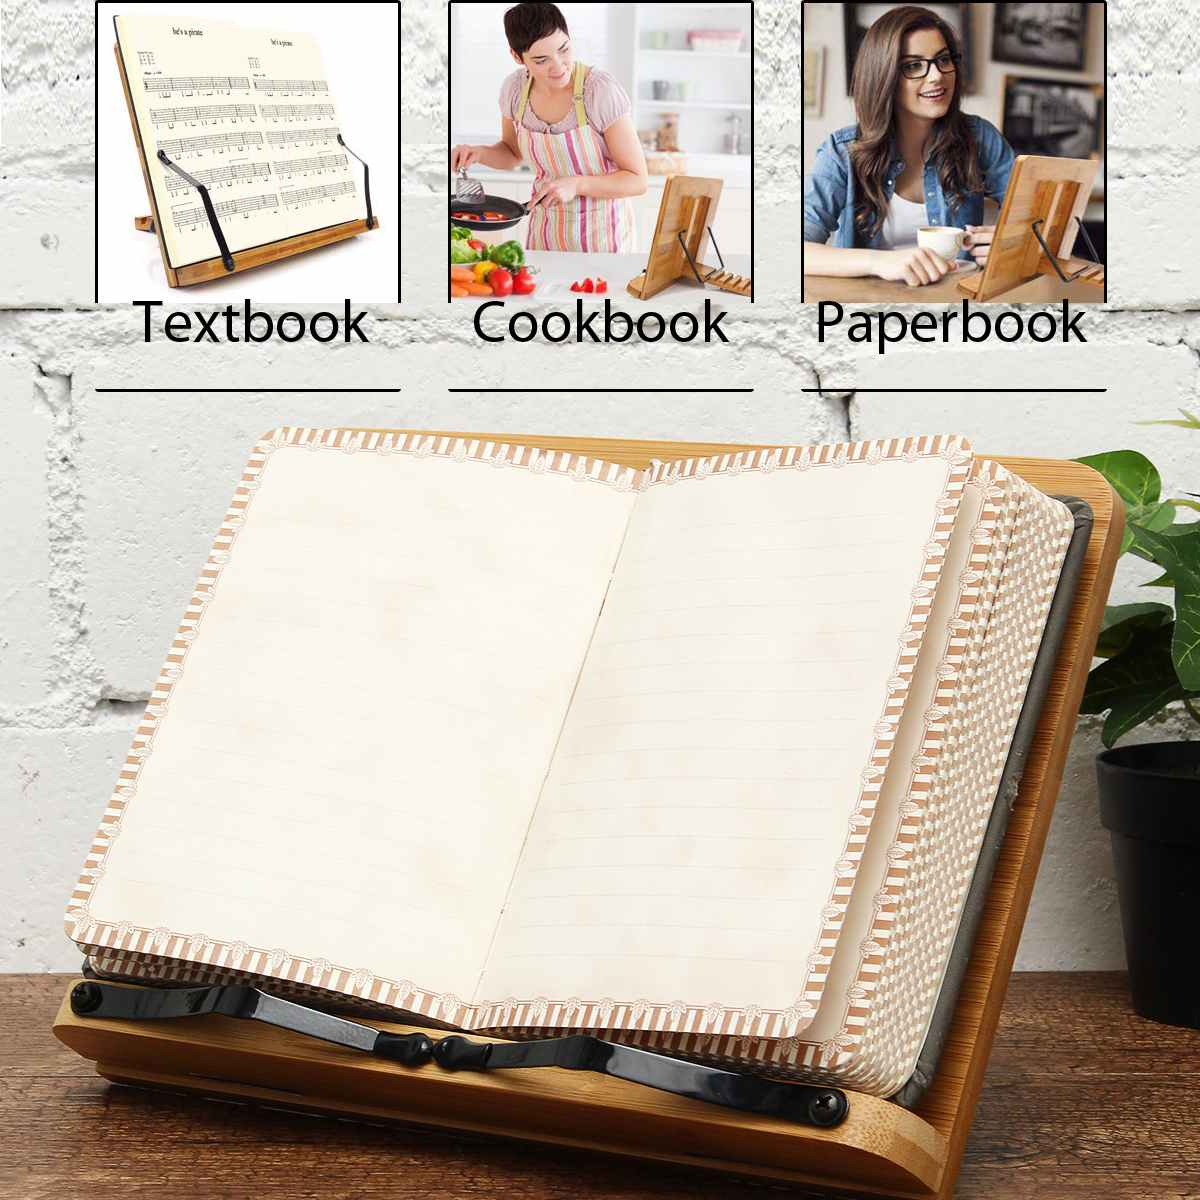 Portable Adjustable Books Reading Desk Bookends Standing Cookbook Music Score Textbook Bible Bamboo Book Holder Tray With Clip